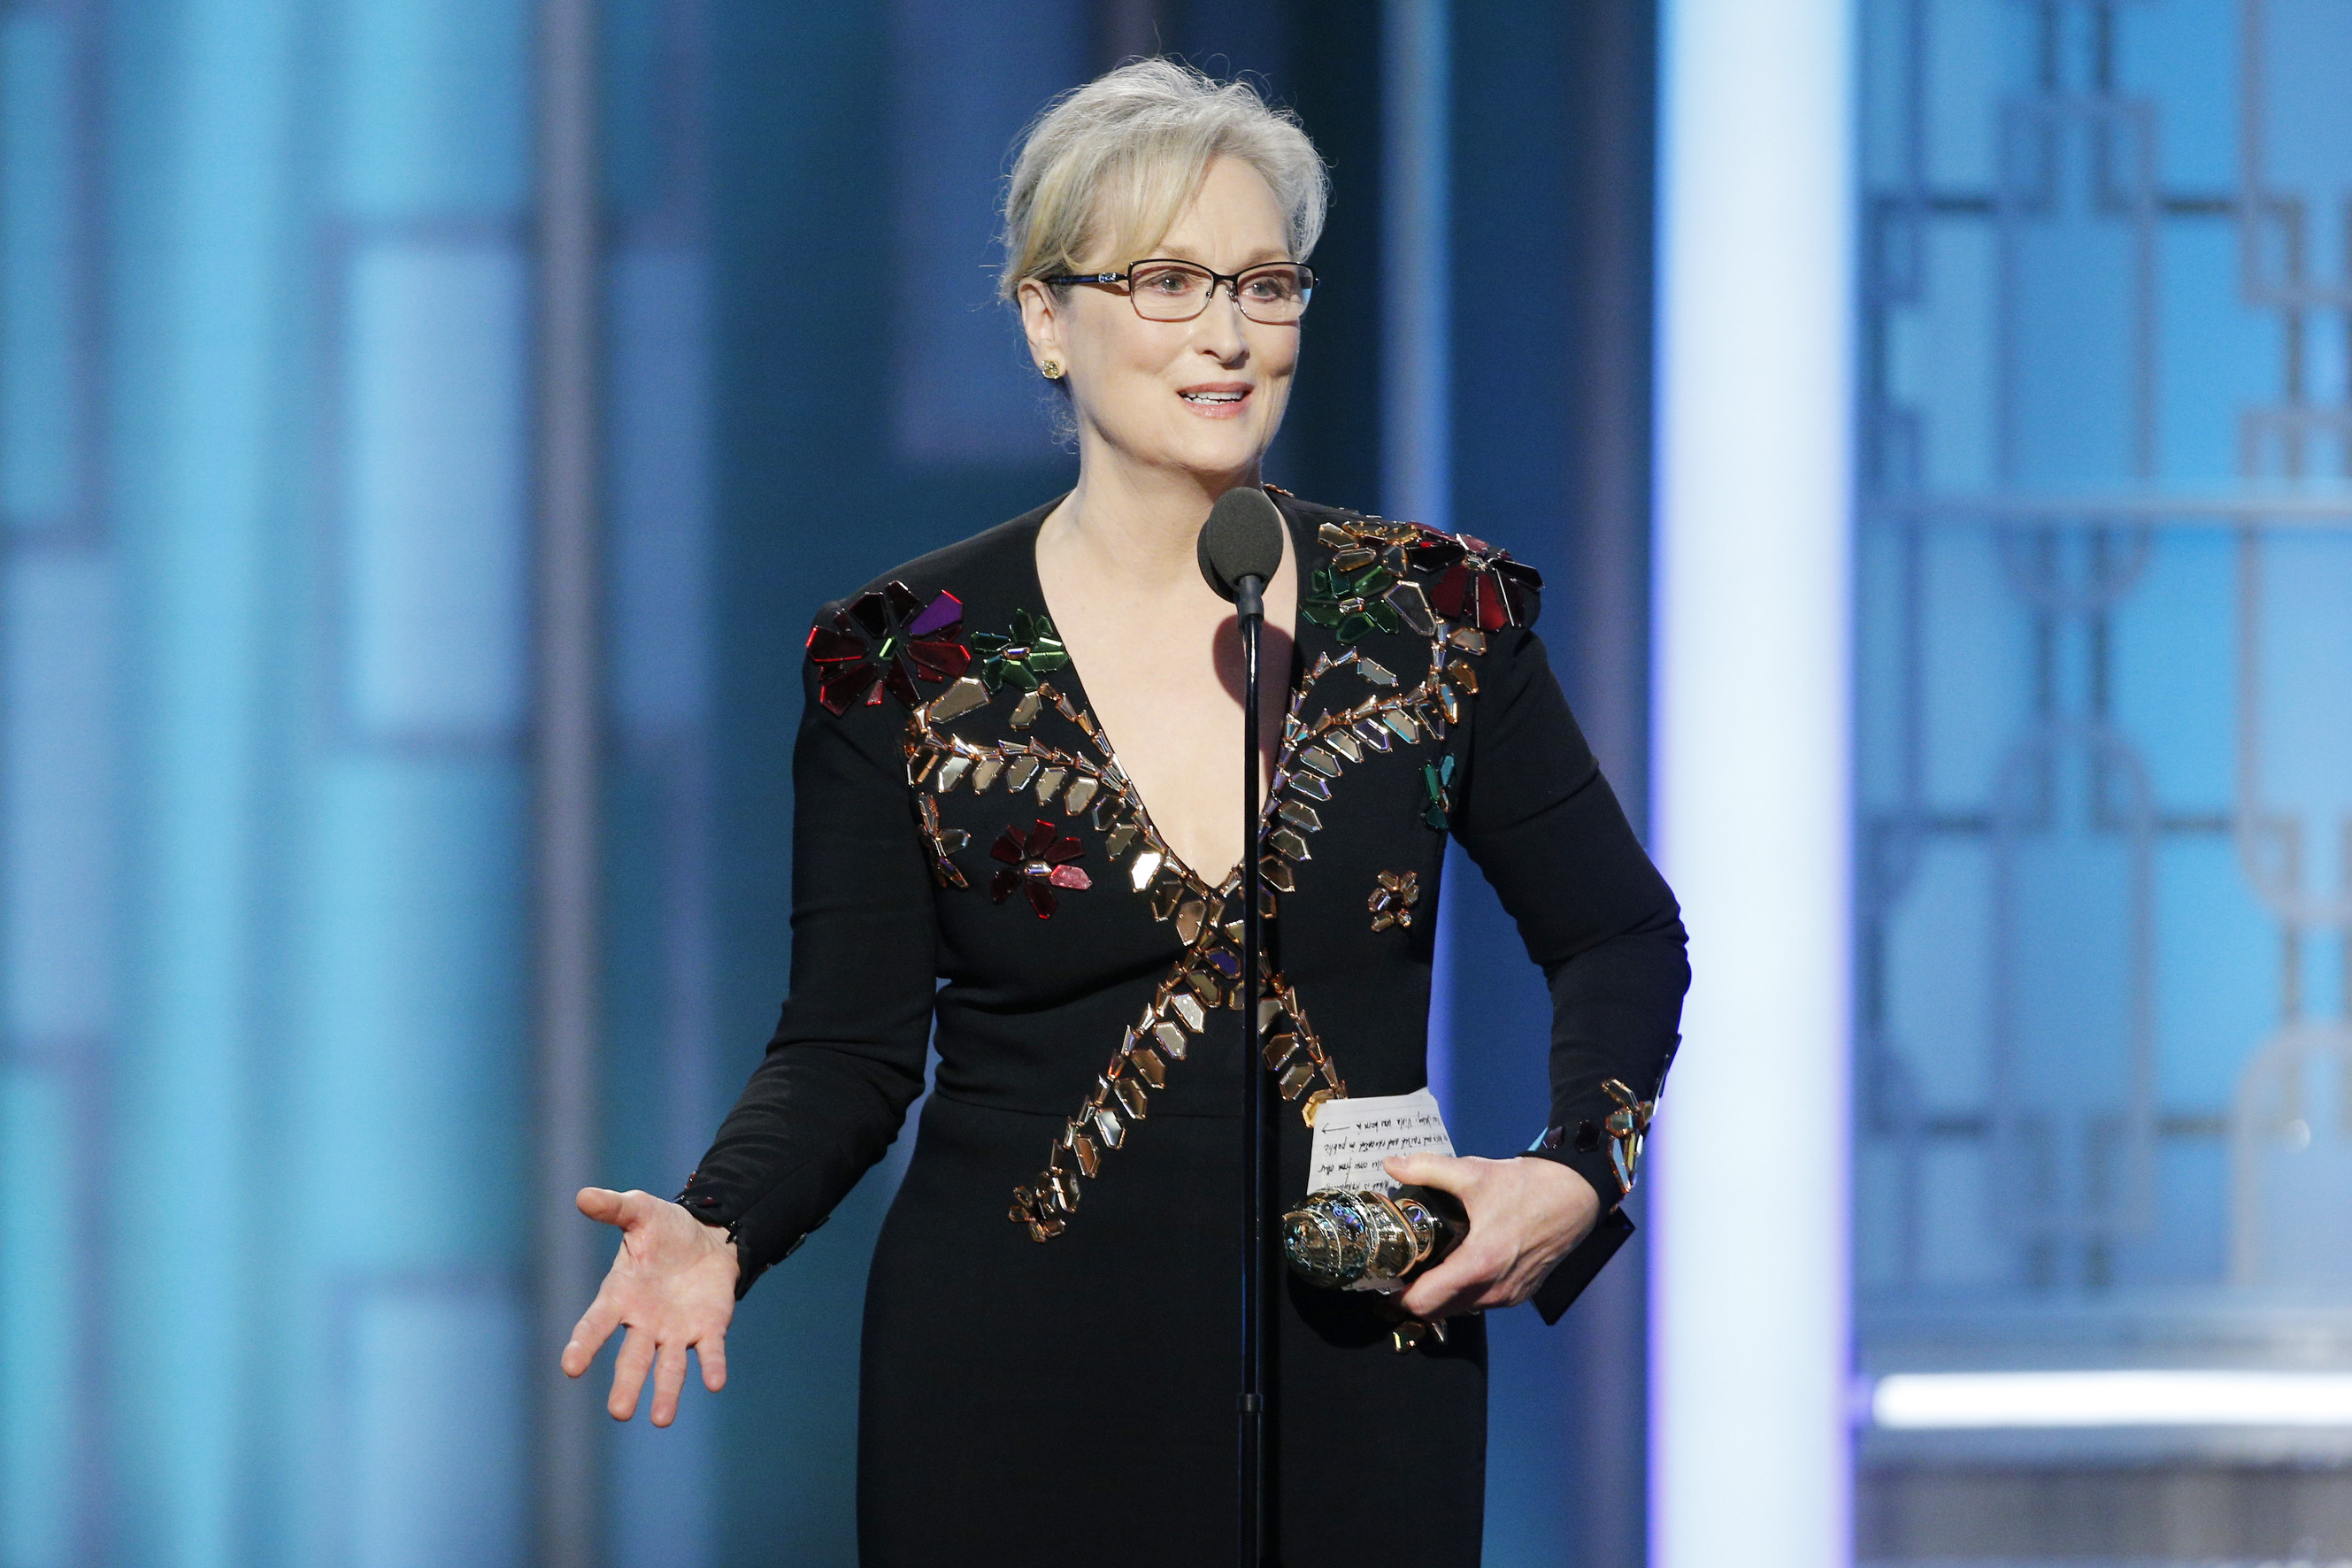 Meryl Streep accepts the Cecil B. DeMille Award during the 74th Annual Golden Globe Awards at The Beverly Hilton Hotel, Jan.8, 2017 in Beverly Hills, Calif.